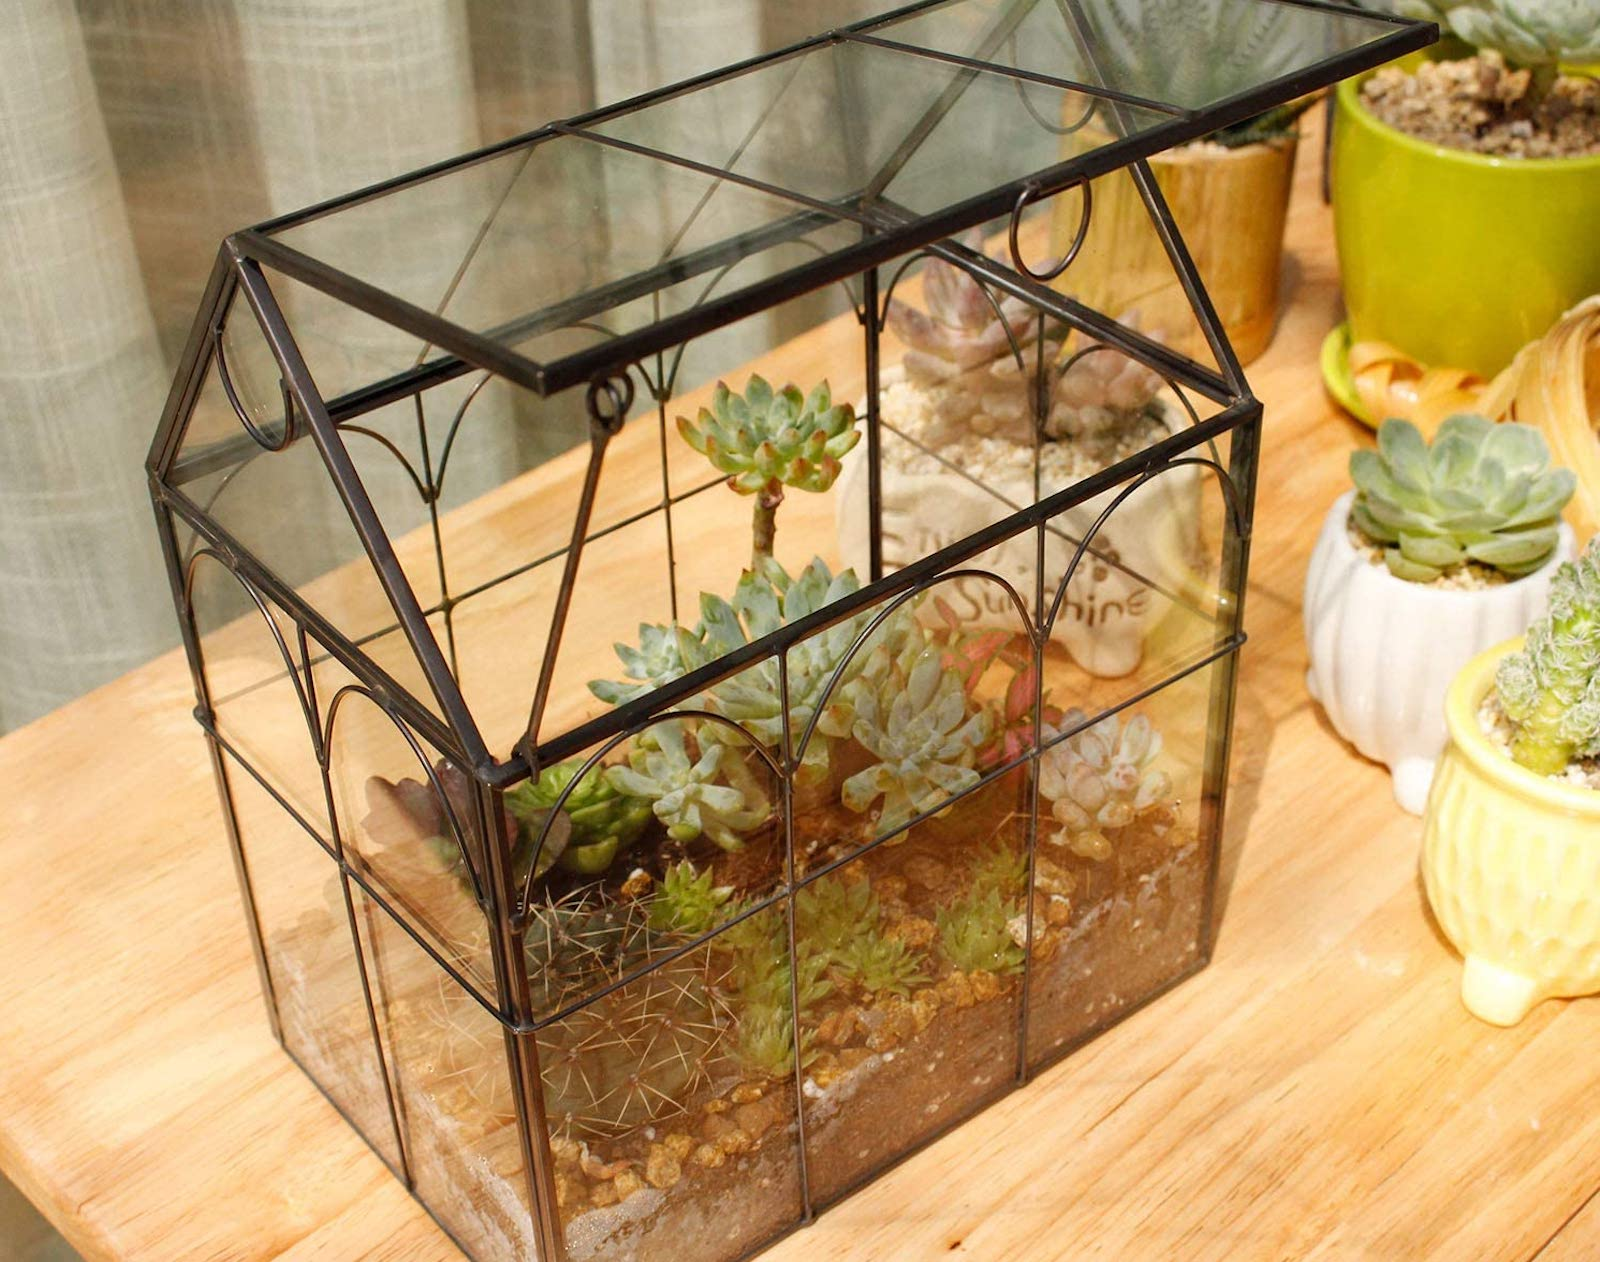 A glass and metal terrarium with succulents inside, sitting on a wood table